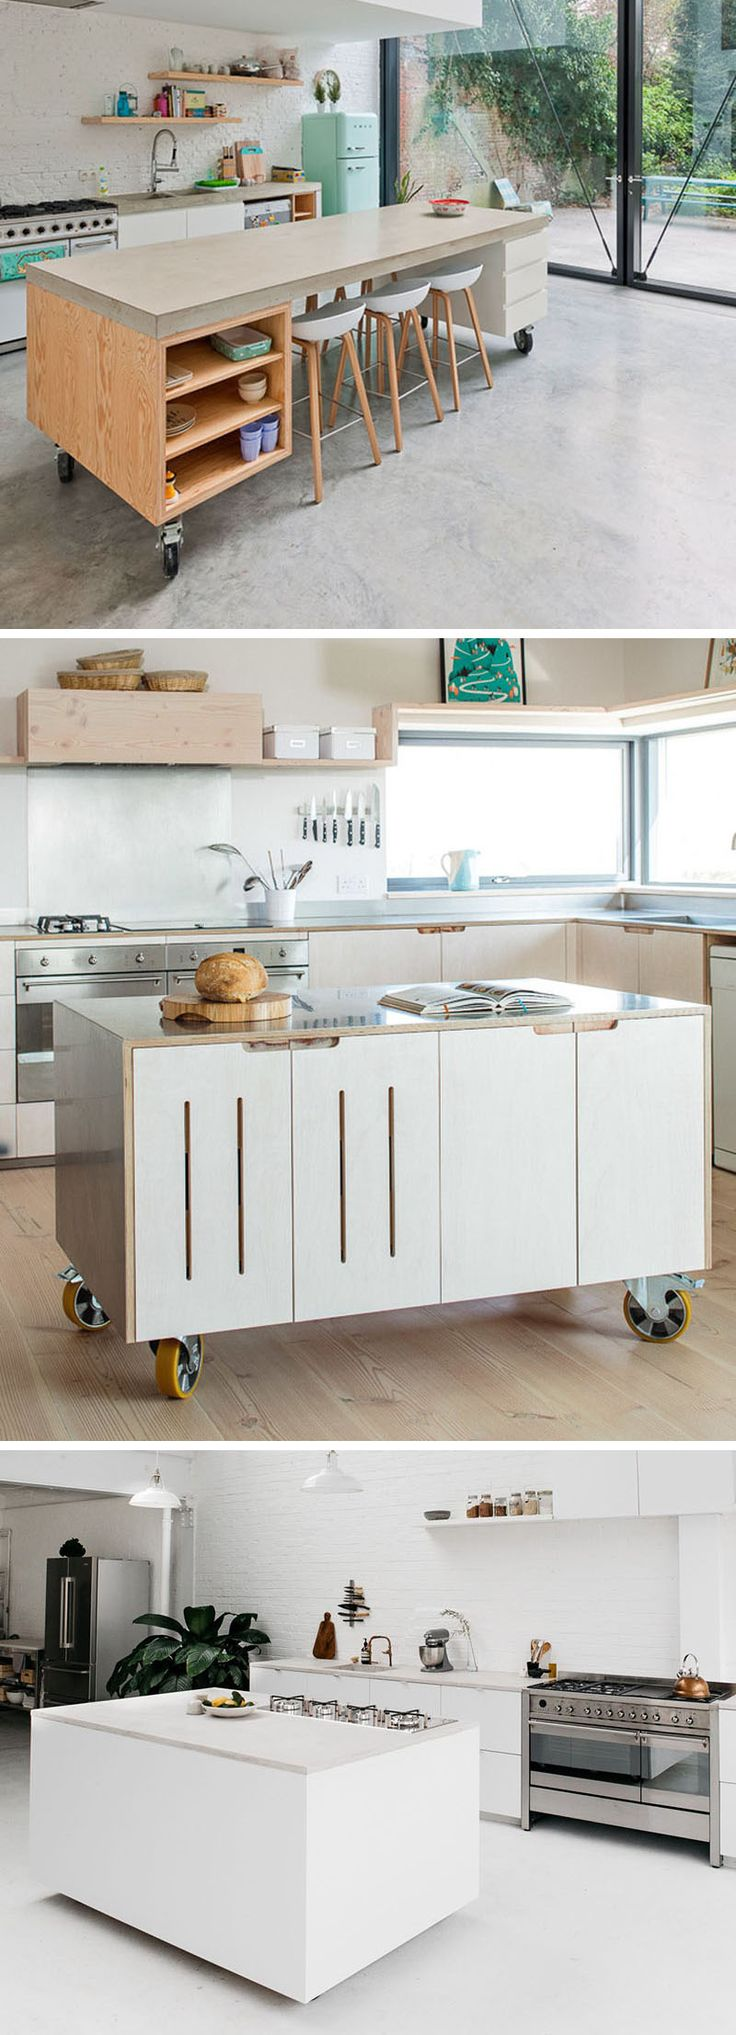 Here are 8 examples of movable kitchen islands with wheels in a variety of materials, that make these modern kitchens more versatile and convenient.